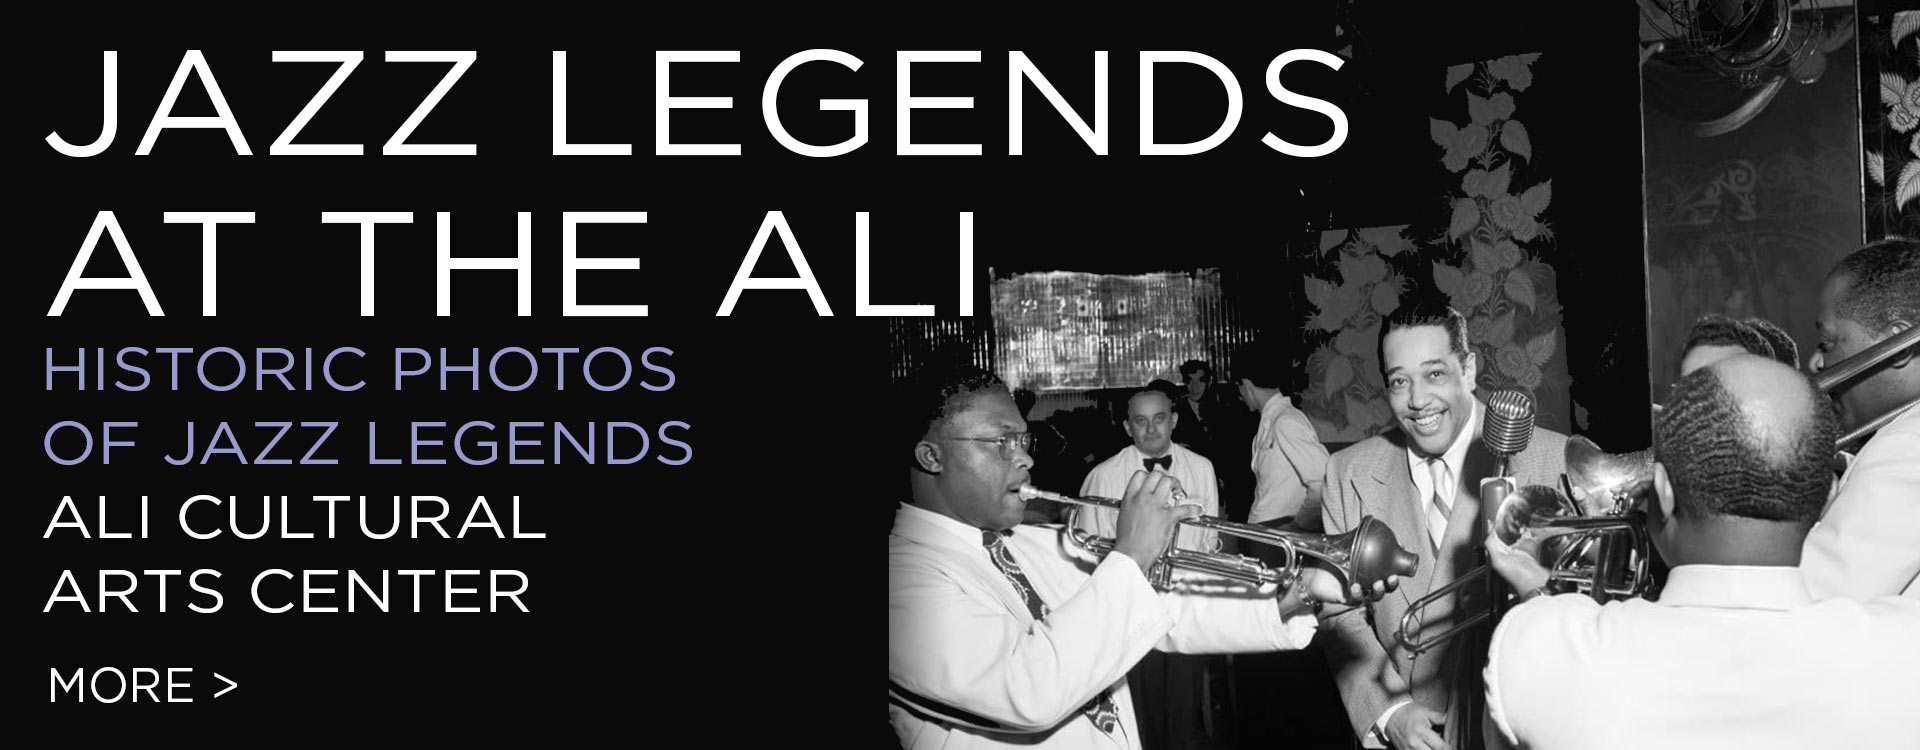 Legends at the Ali